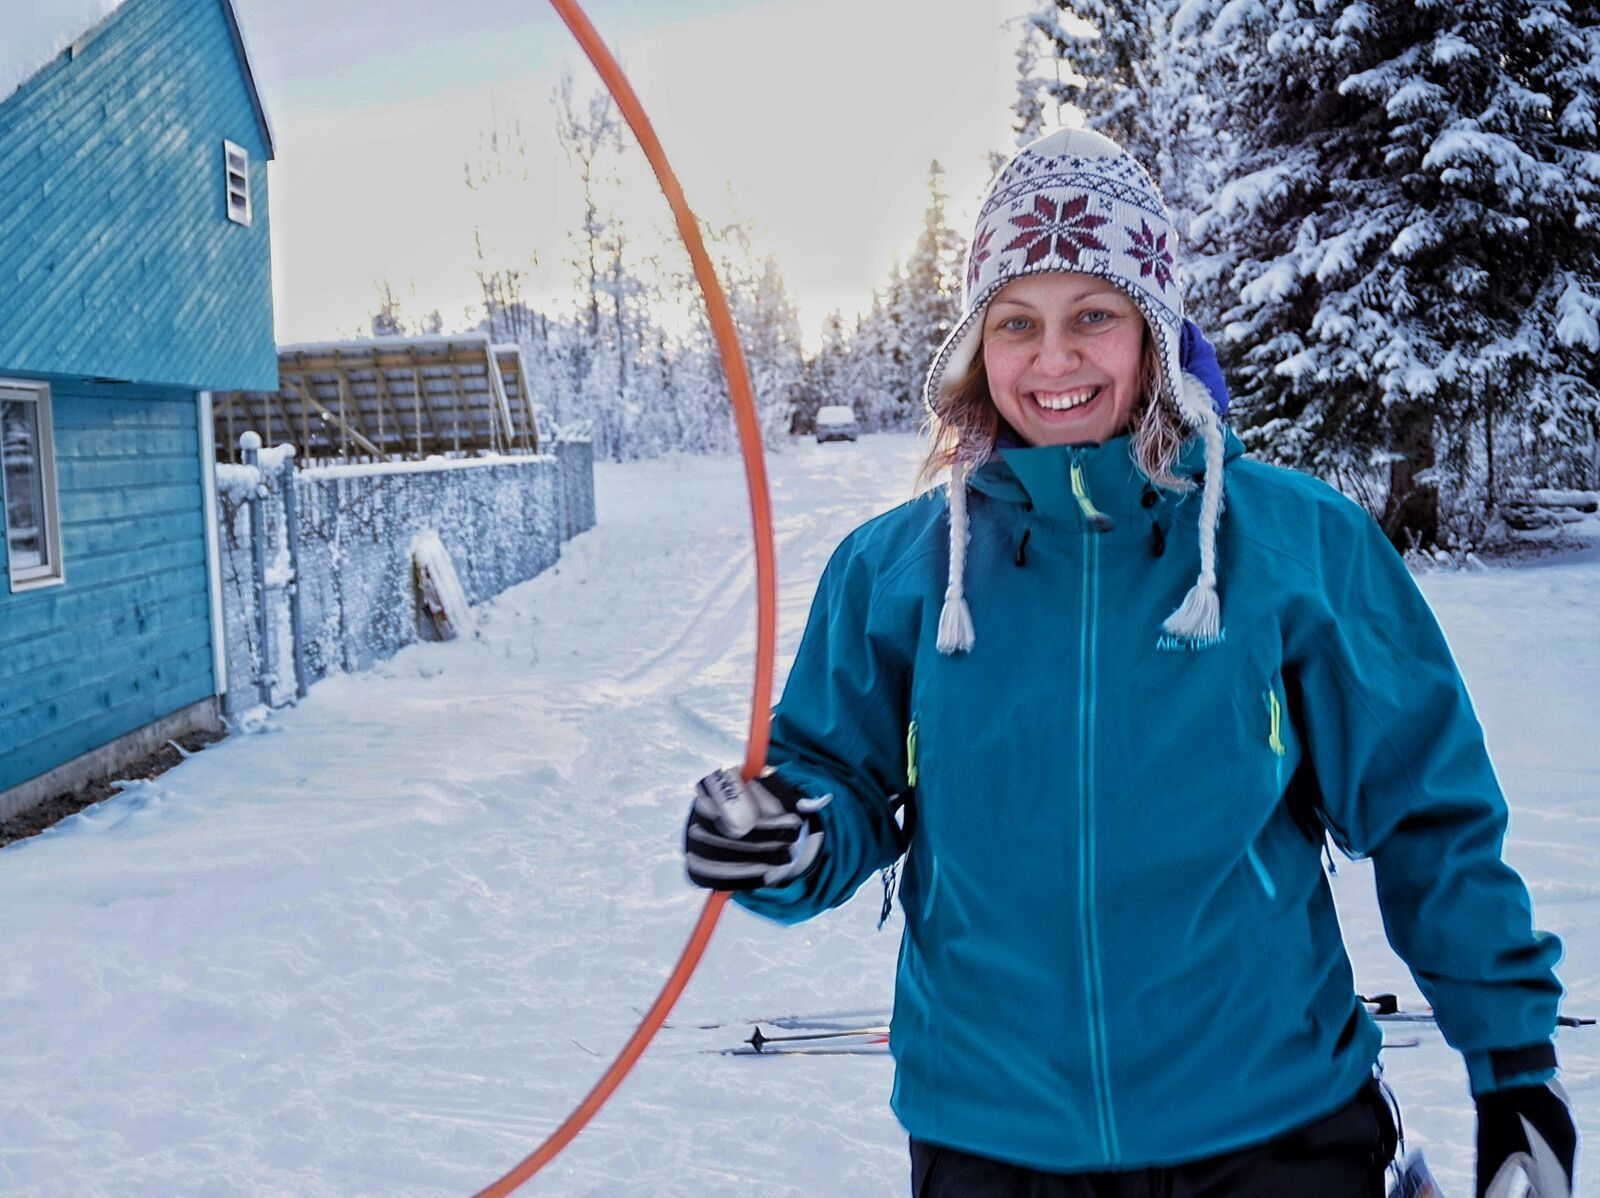 The Recreation and Parks Association of the Yukon (RPAY) manages the RHEAL Leader program with funding from Yukon Government Sport and Recreation Branch.